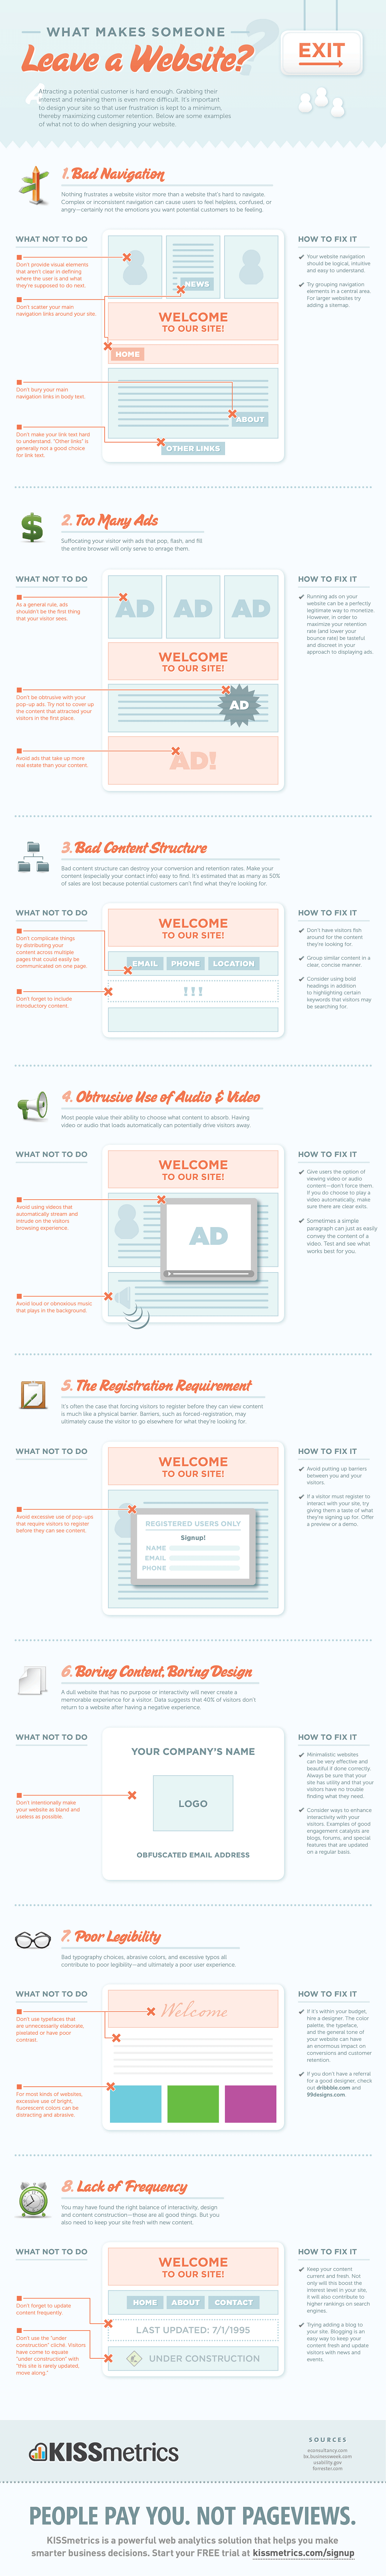 leaves-a-website-design-usability-infographic